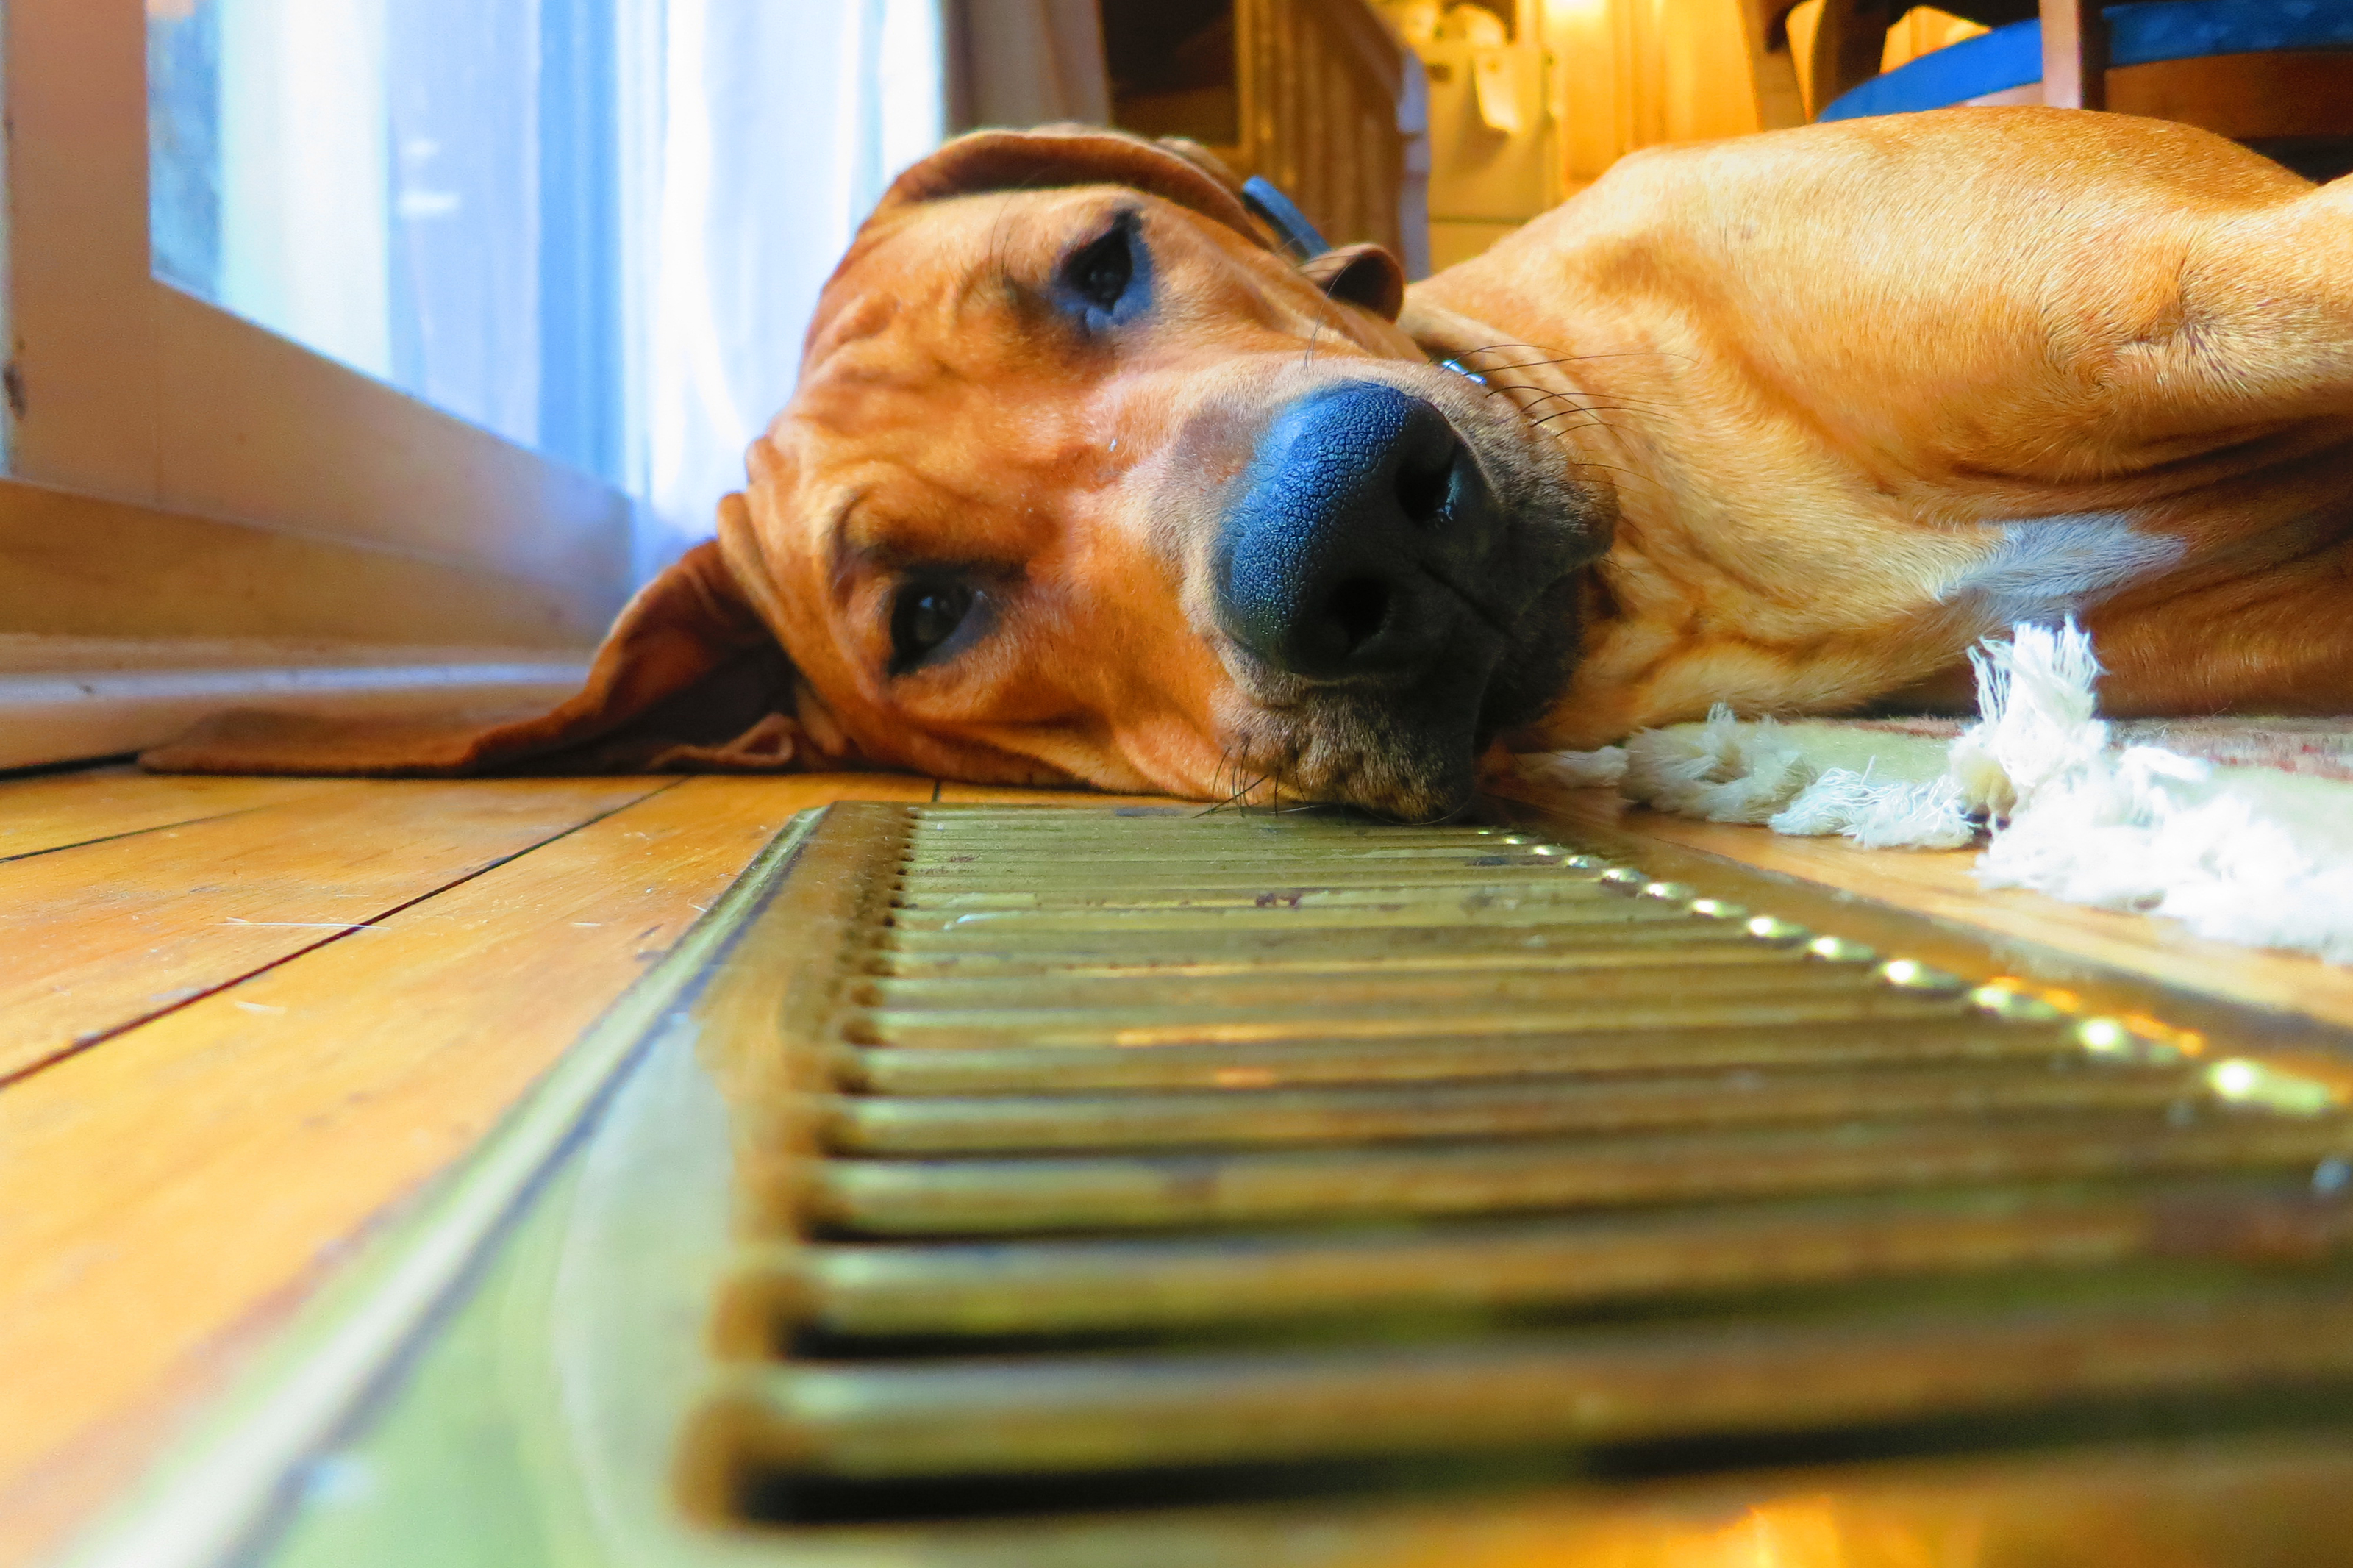 Dog lying down on a wood floor next to an air vent